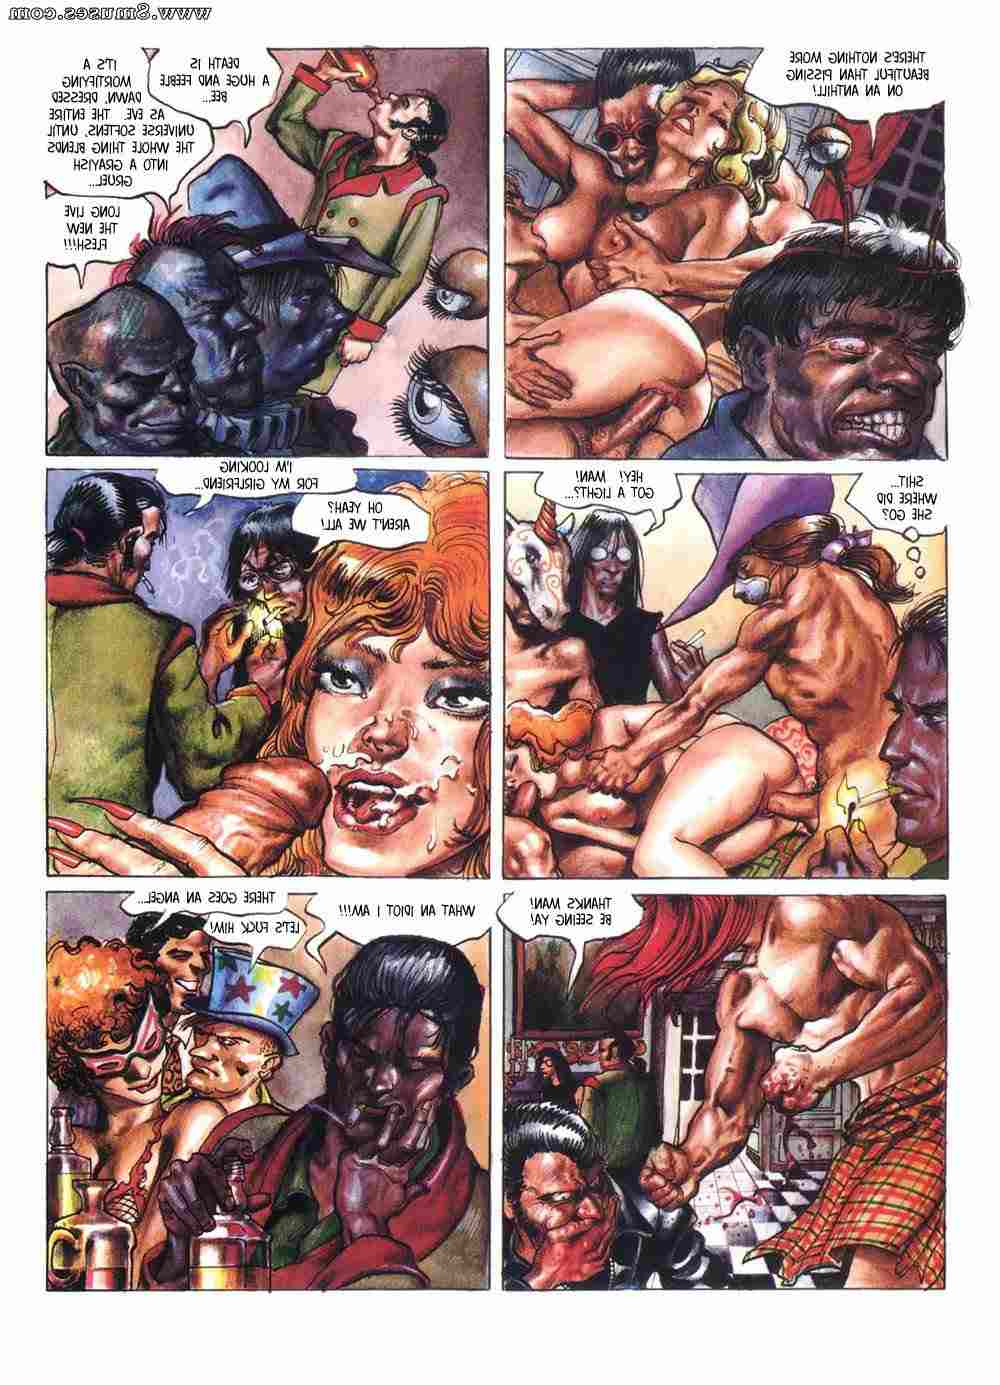 Various-Authors/Starzo/Mike-Mercury Mike_Mercury__8muses_-_Sex_and_Porn_Comics_14.jpg